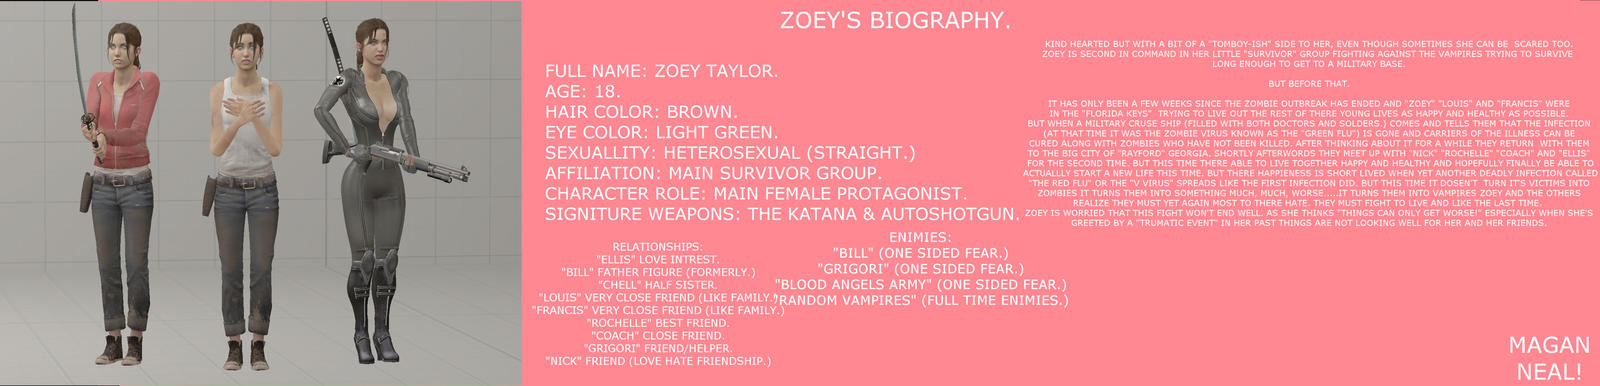 (BLOOD ANGELS) BIOGRAPHY'S, ZOEY'S BIOGRAPHY.